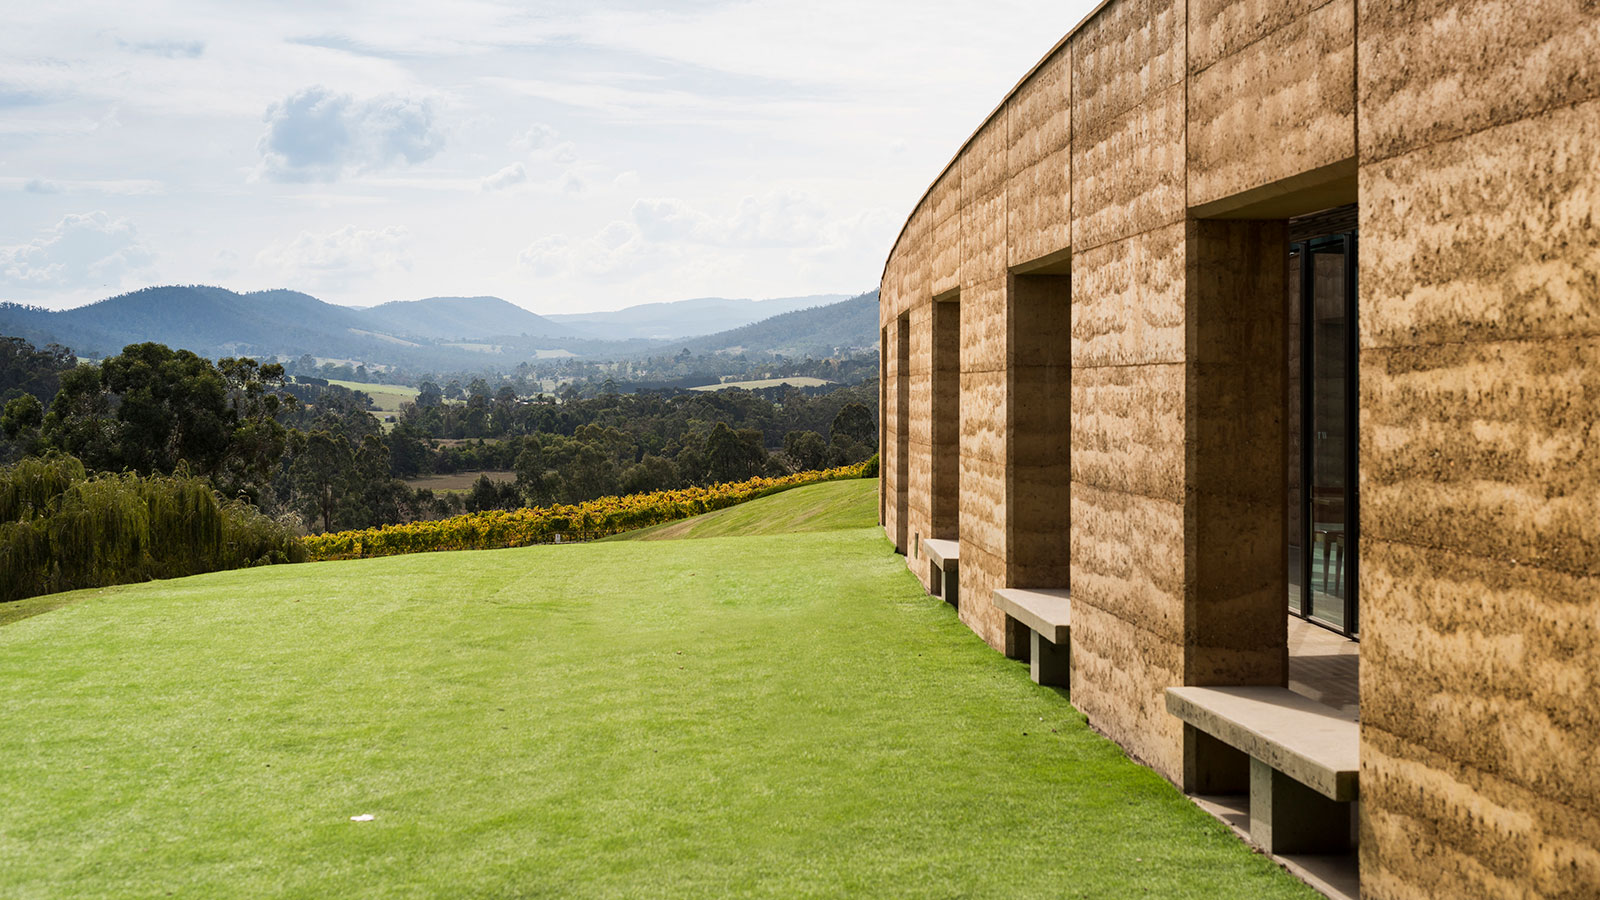 TarraWarra Estate, Yarra Valley and Dandenong Ranges, Victoria, Australia